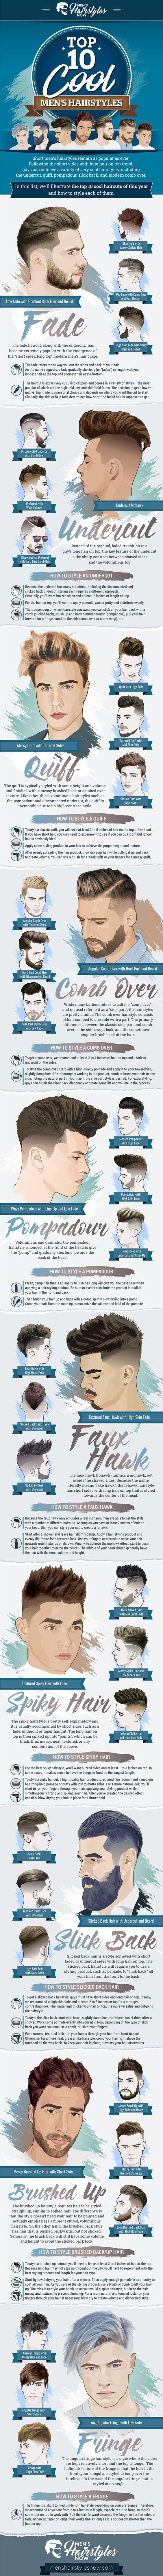 Cool Hairstyles For Men - Best Trendy and Stylish Men's Haircuts 2017...